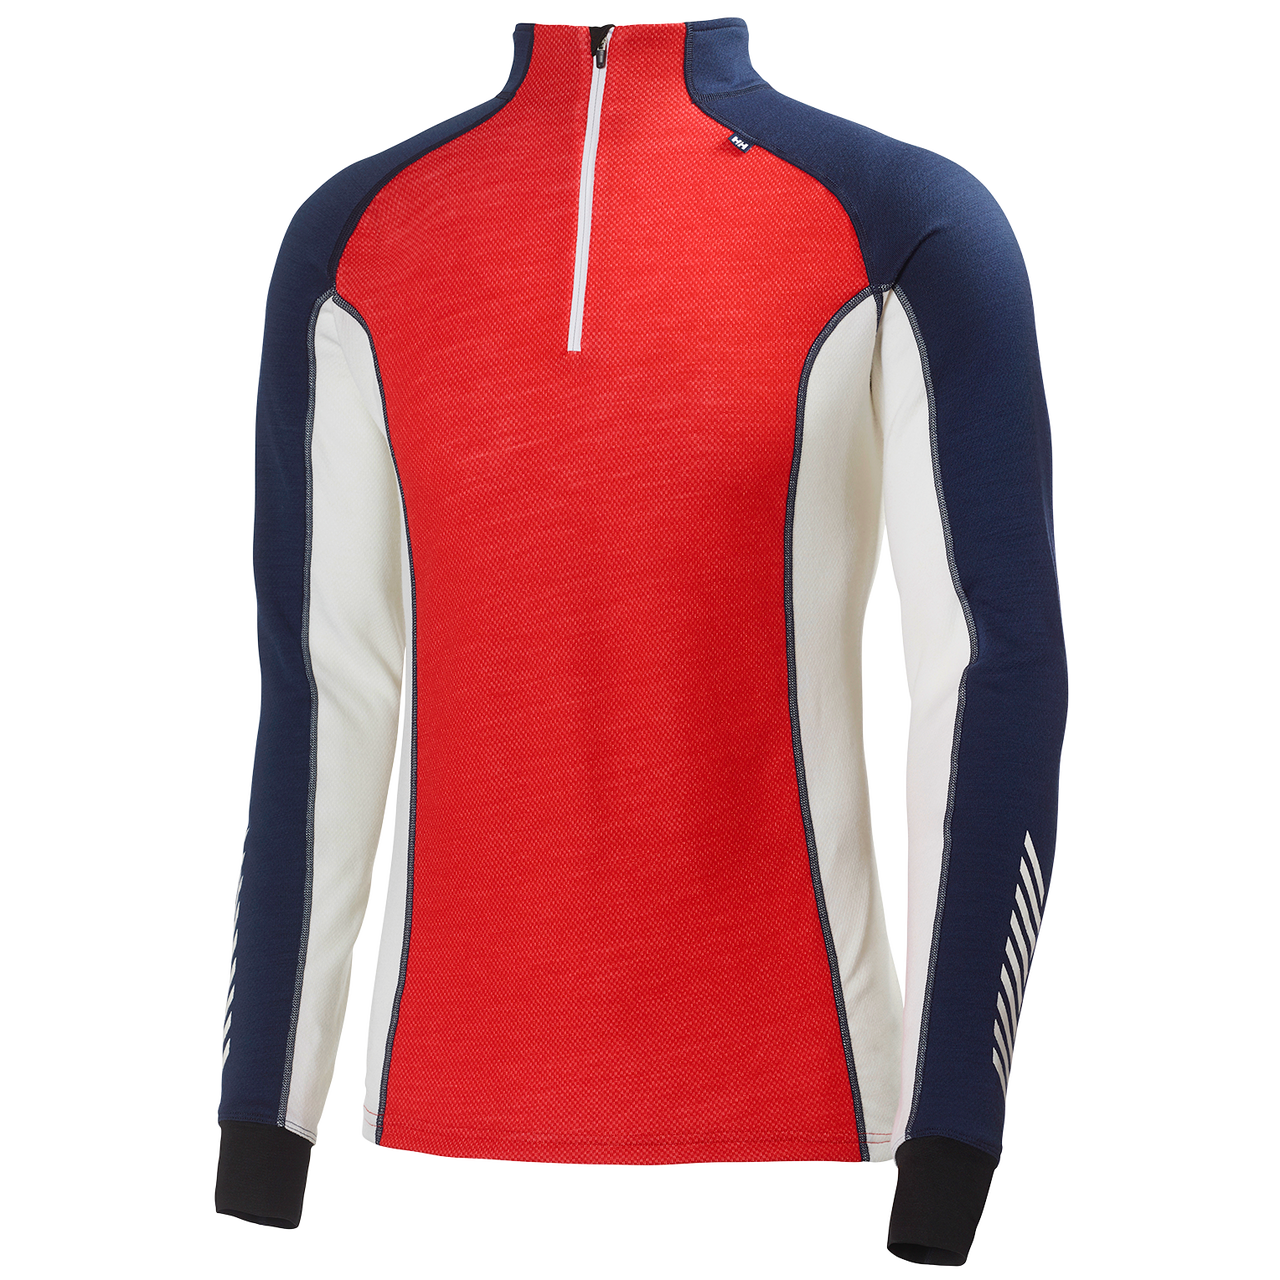 Helly Hansen Mens Warm Freeze 1/2 Zip Baselayer L/S Top: Alert Red/Evening Blue